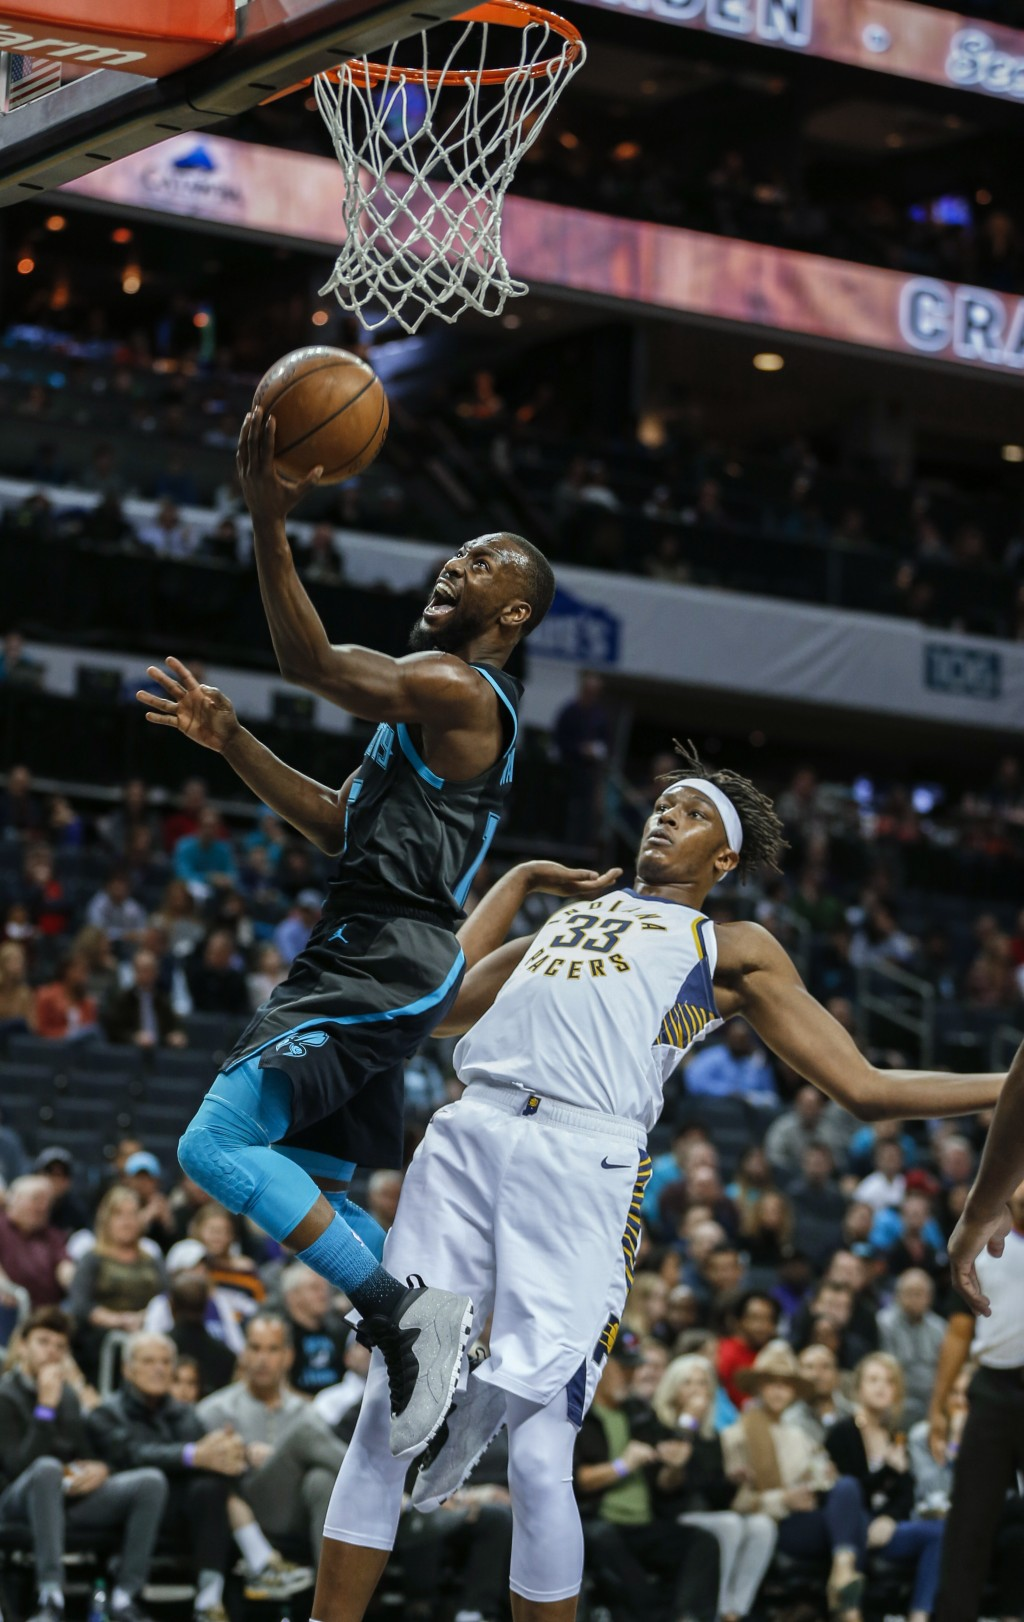 Charlotte Hornets guard Kemba Walker, left, drives to the basket in front of Indiana Pacers center Myles Turner during the first half of an NBA basket...